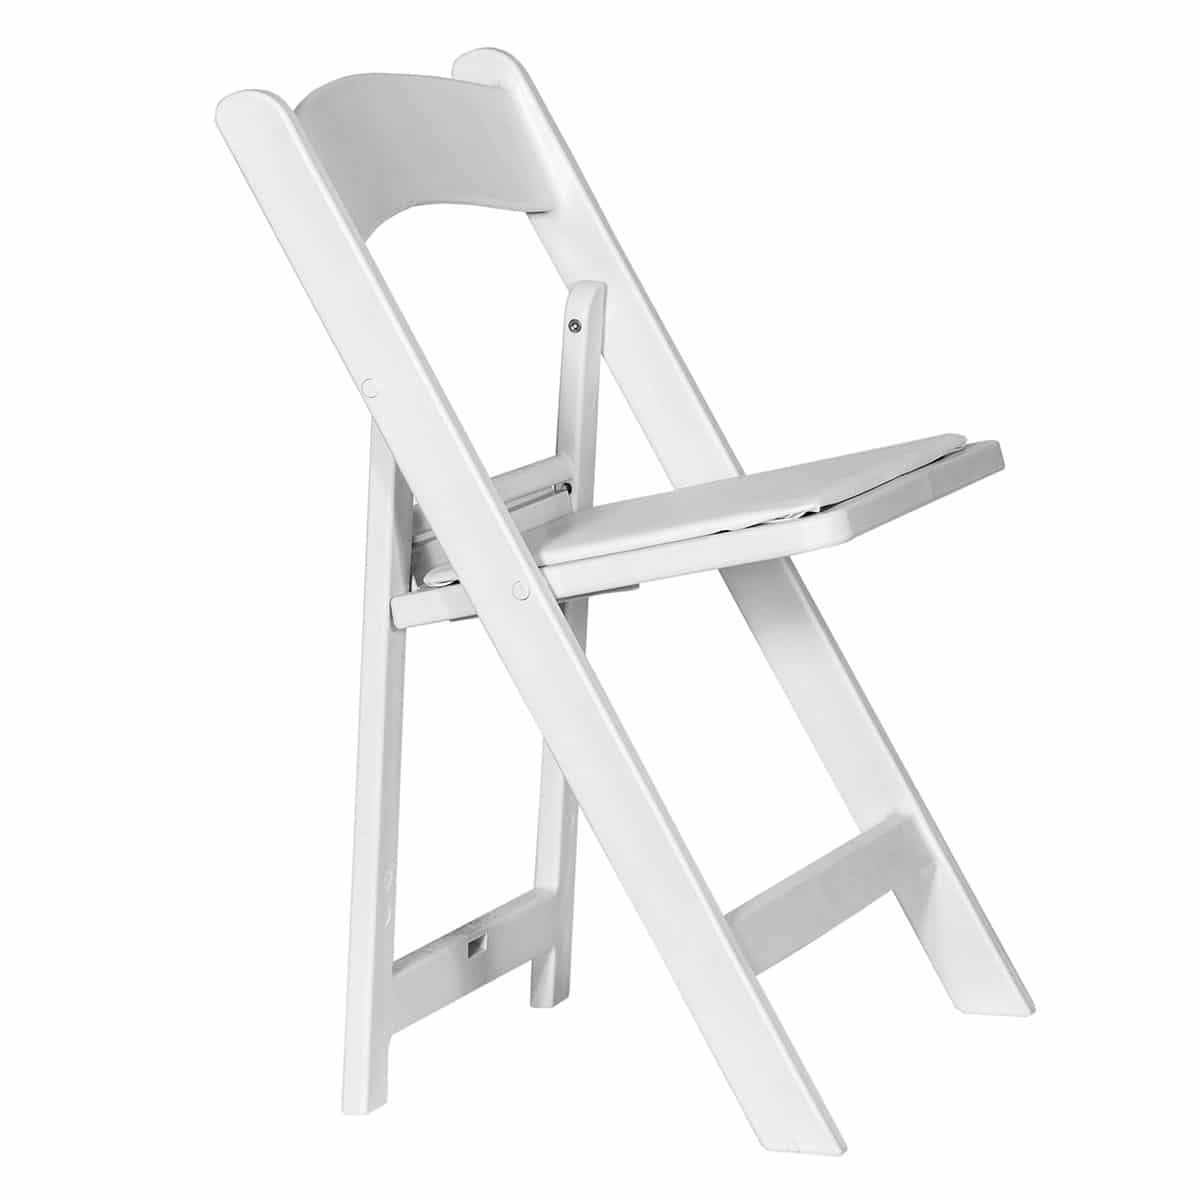 Economic white folding chair Sphinx model - Side view